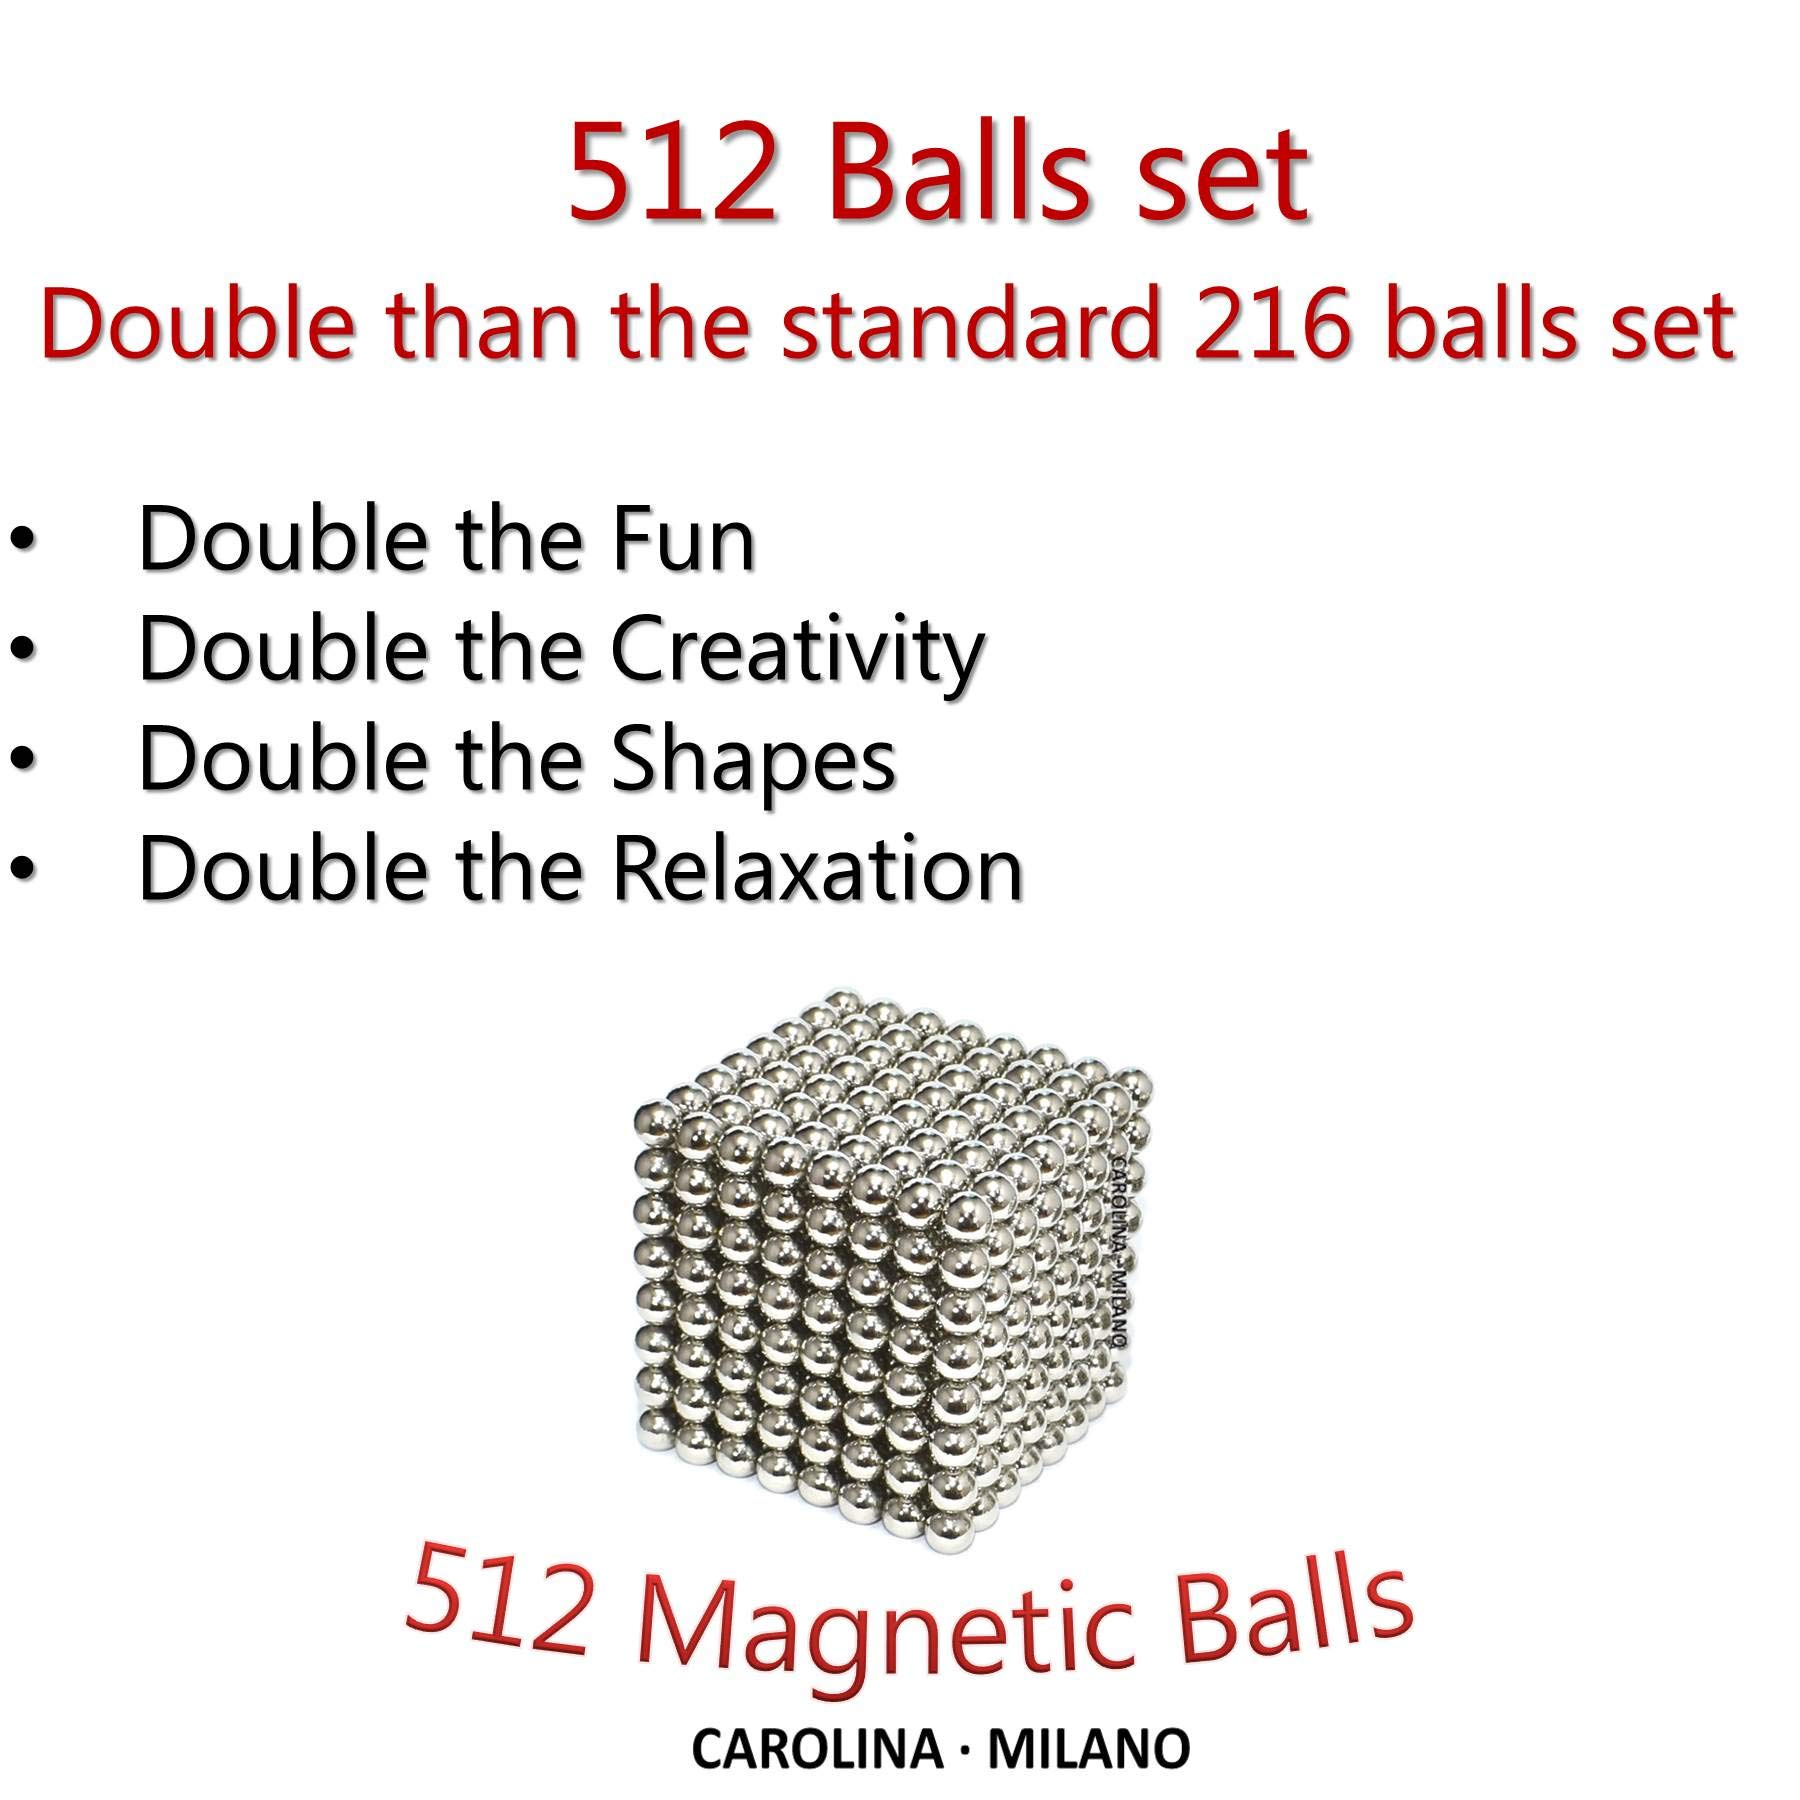 512 pieces Large 5mm Magnetic Balls Building Blocks Sculpture Magnets Educational game Office Magnet Toy Intelligence Development Stress Relief Imagination gift family (set of 216pcs x2 + 80 balls) by CAROLINA MILANO (Image #2)